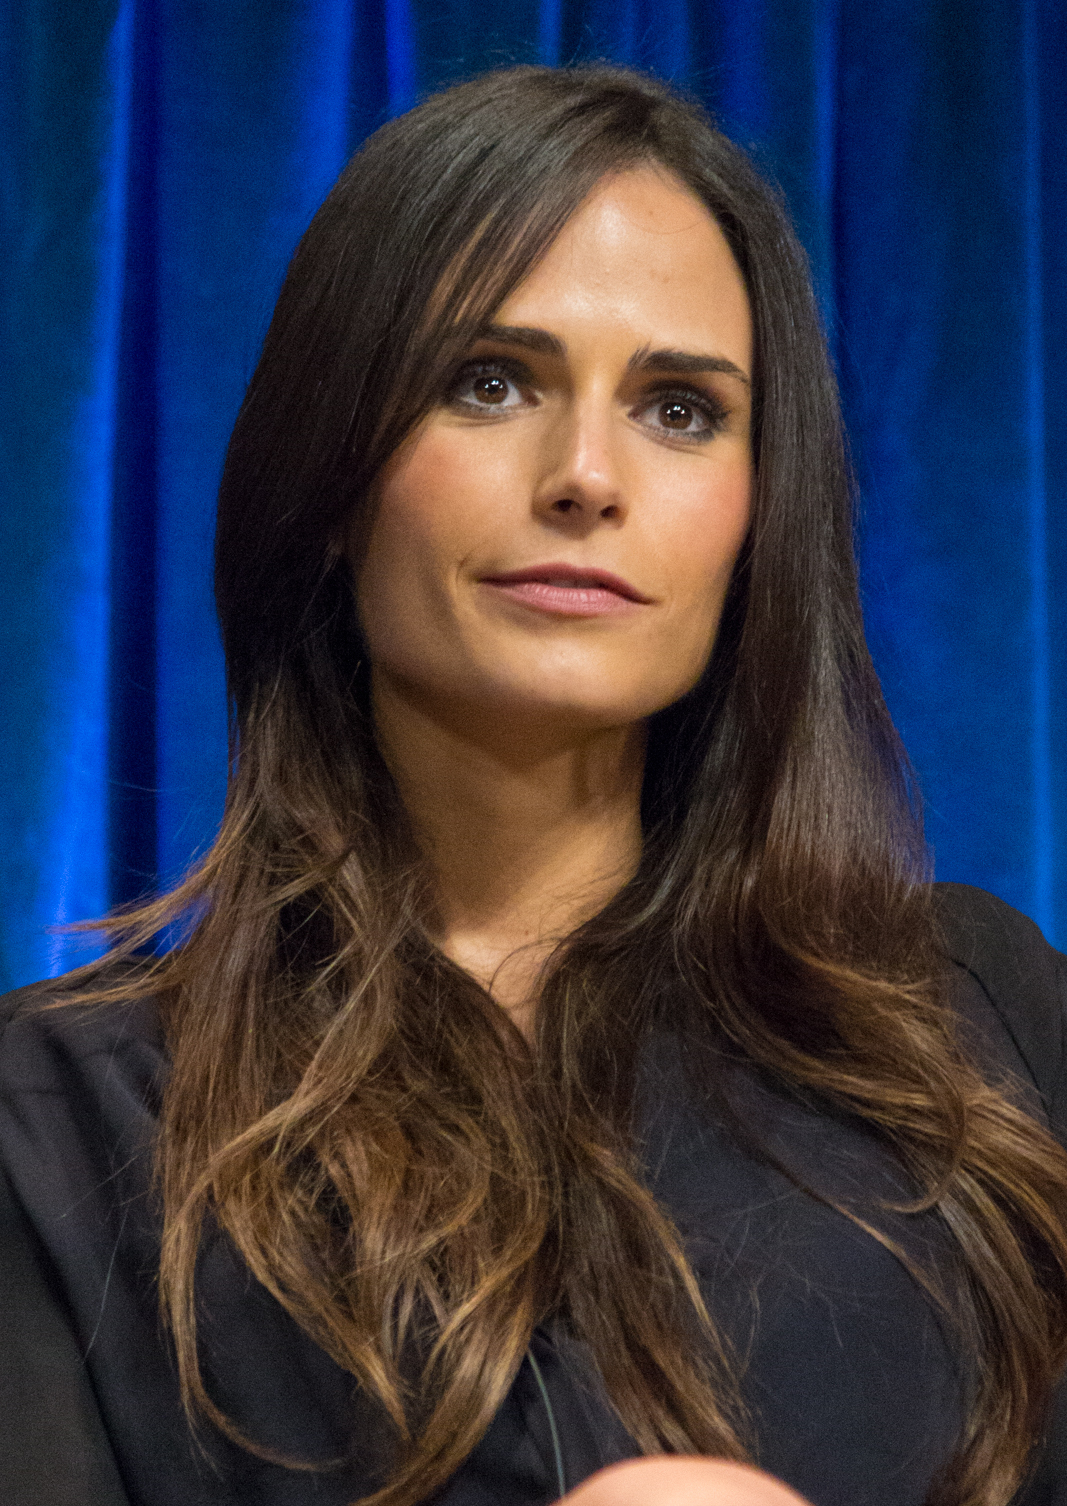 jordana brewster marie clairejordana brewster 2017, jordana brewster marie claire, jordana brewster 2013, jordana brewster 2016, jordana brewster and paul walker, jordana brewster interview, jordana brewster mia, jordana brewster wikipedia, jordana brewster lego batman, jordana brewster fan, jordana brewster kinopoisk, jordana brewster insta, jordana brewster looks like, jordana brewster people's choice 2017, jordana brewster kimdir, jordana brewster -, jordana brewster film, jordana brewster clayne crawford, jordana brewster imdb, jordana brewster screencaps